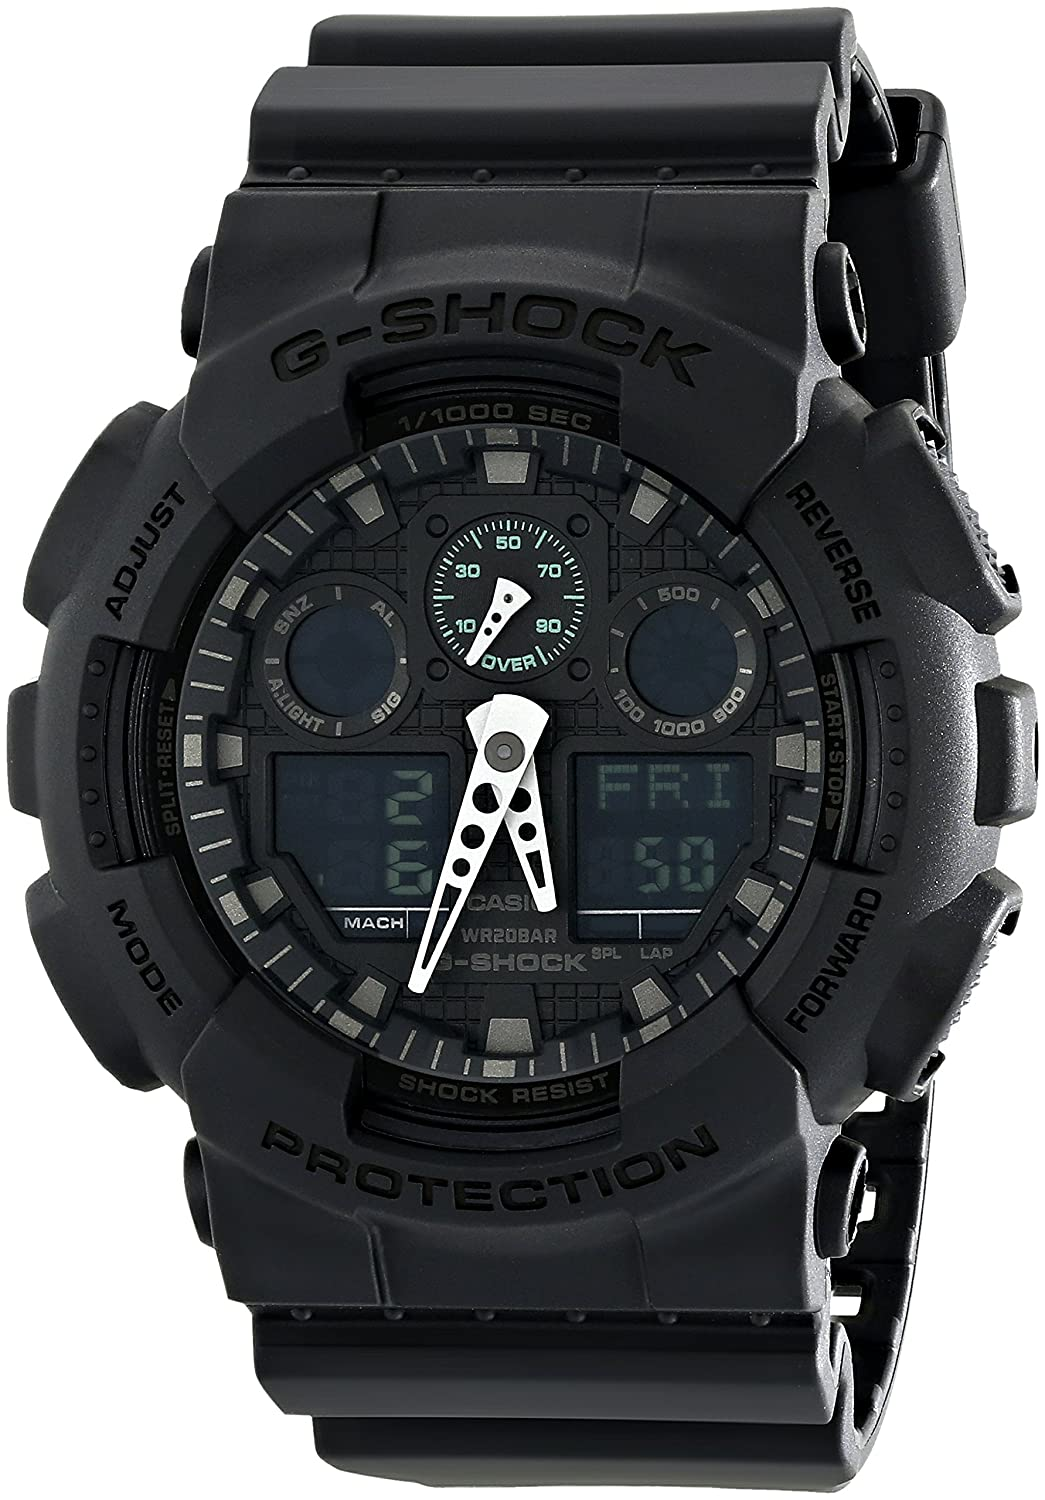 Casio Men's G-Shock GA100MB-1A